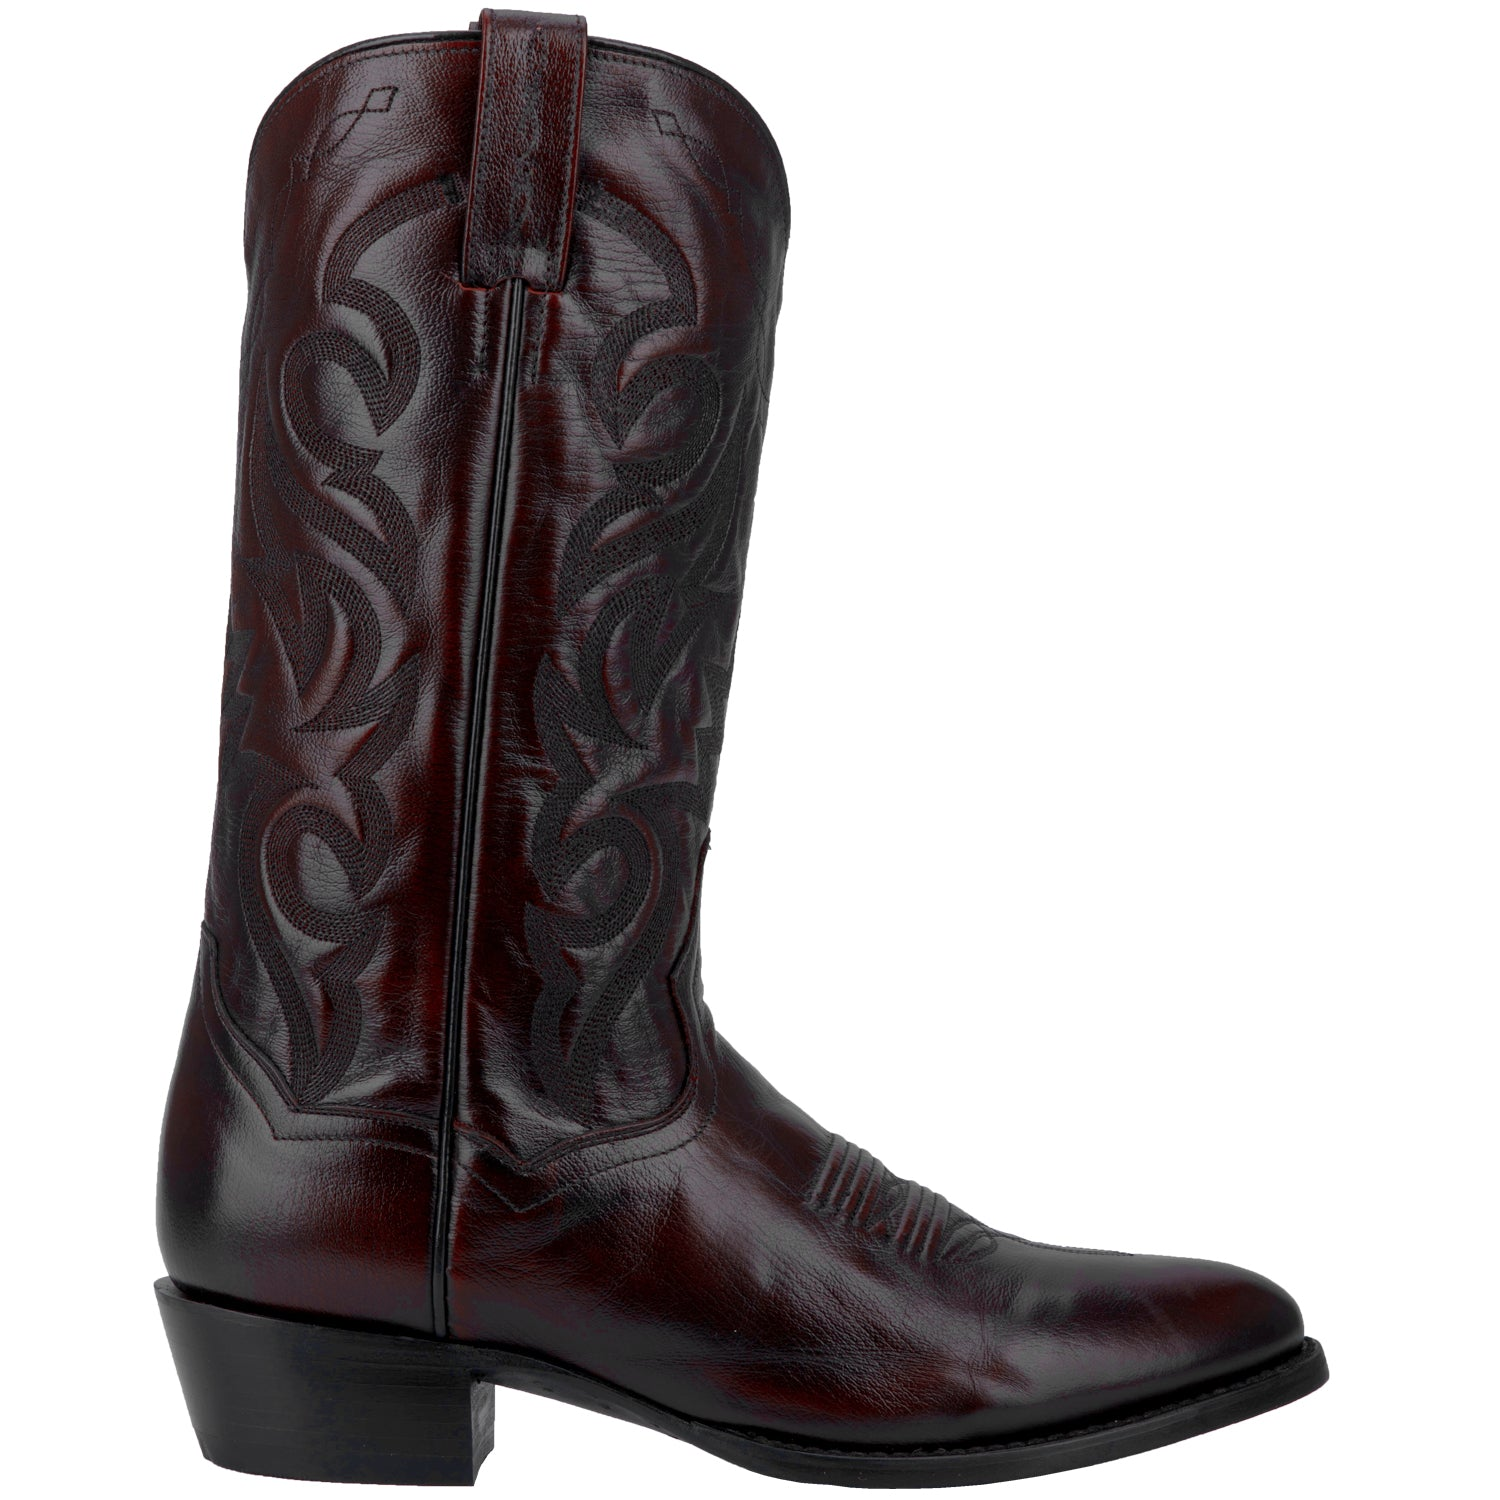 MILWAUKEE LEATHER BOOT 4197057101866